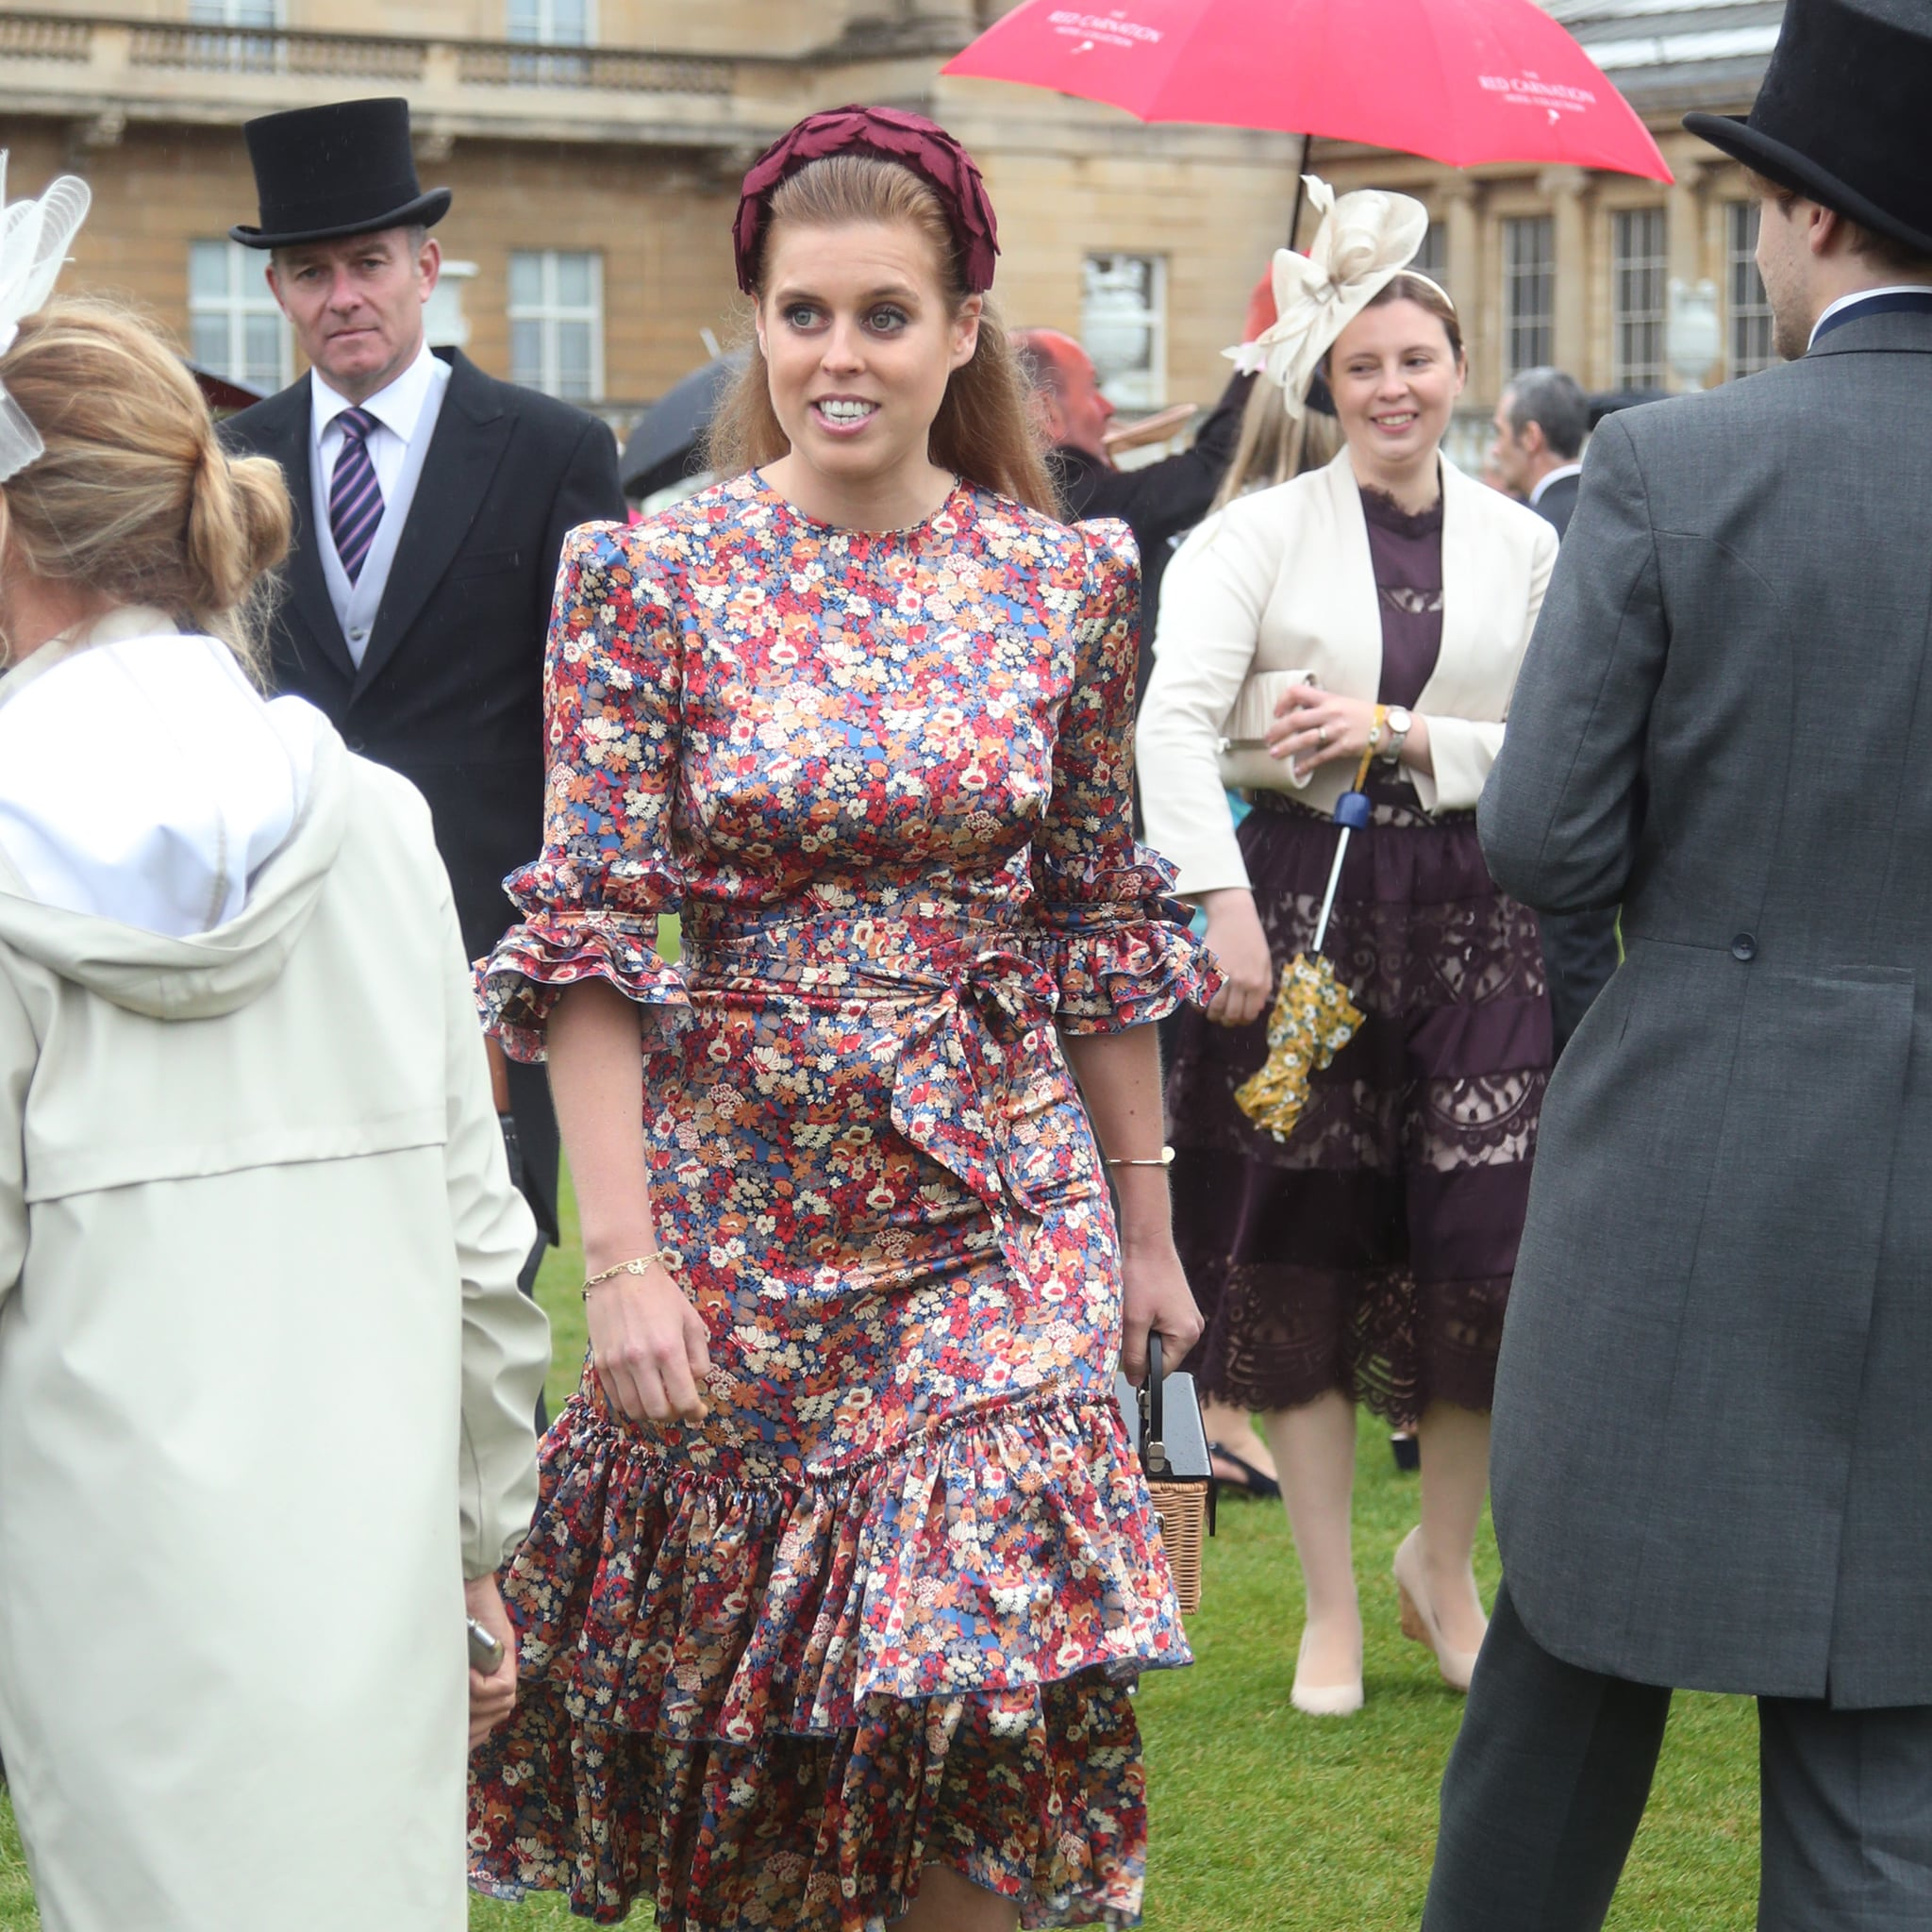 Princess Beatrice Floral Dress At Queen Garden Party 2019